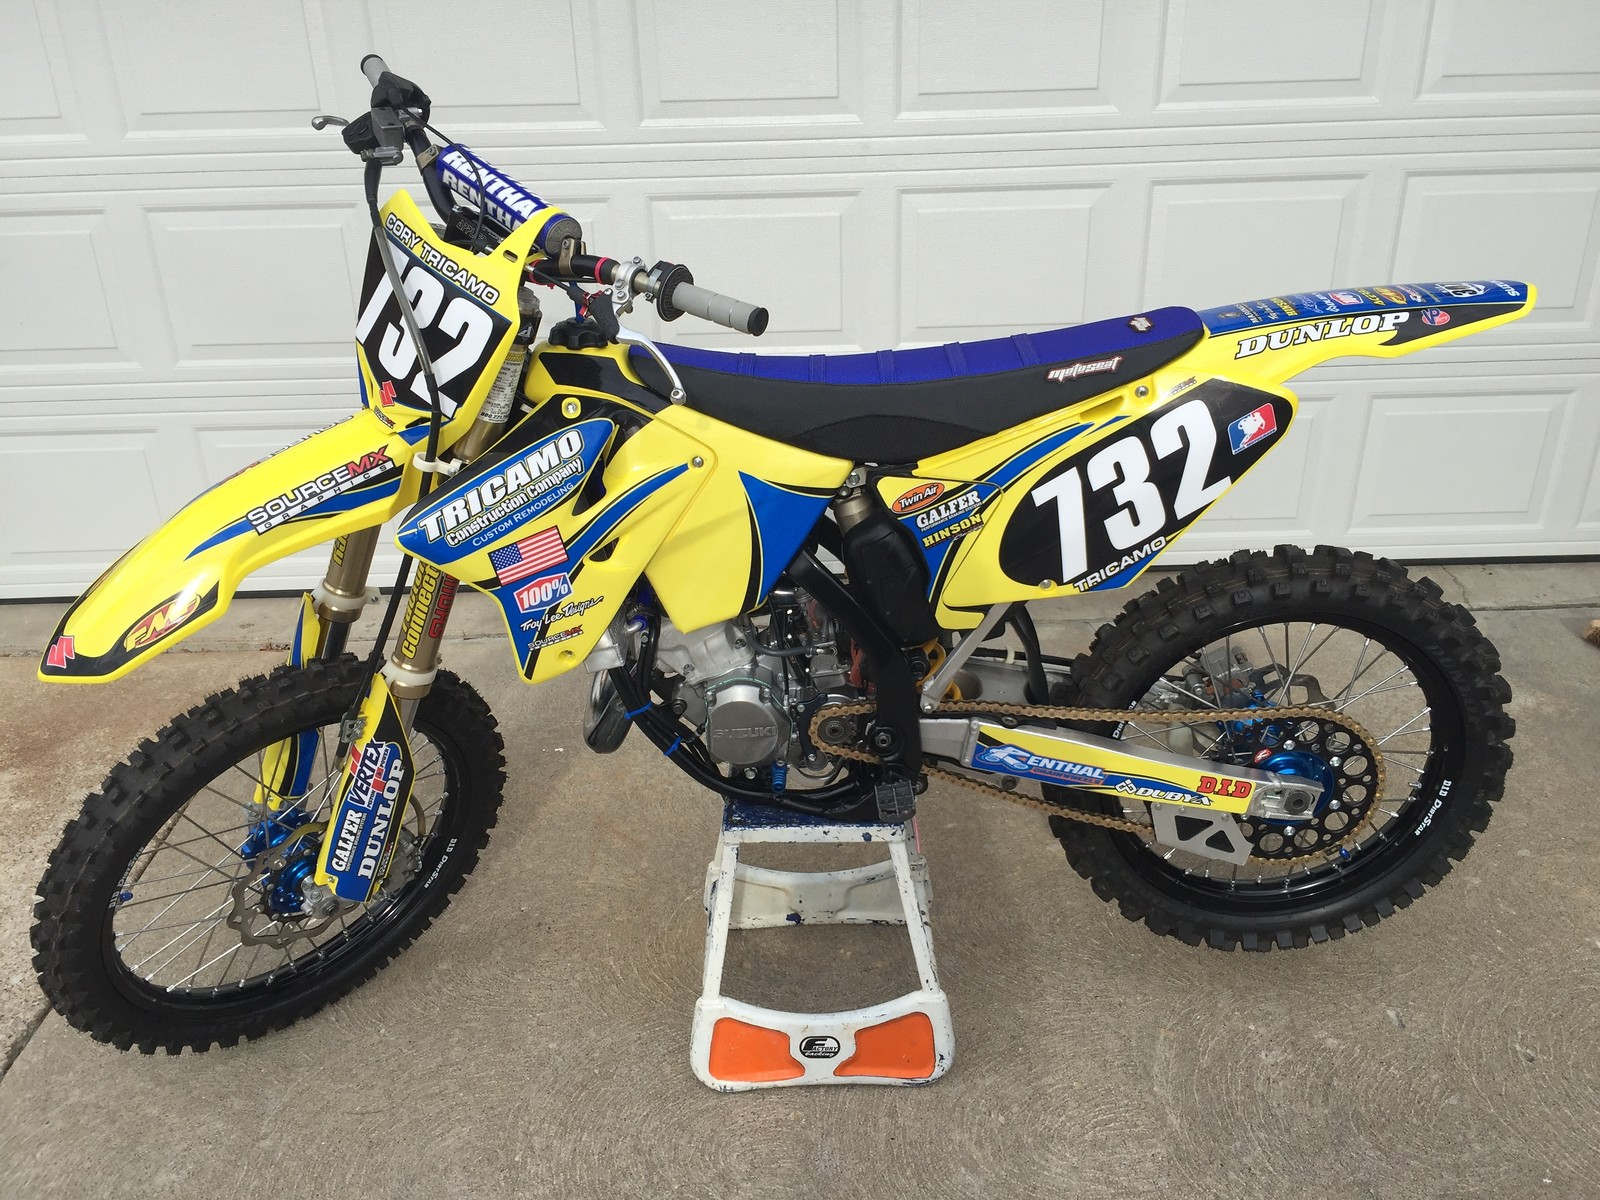 2004 Rm 125 Parts – Billy Knight